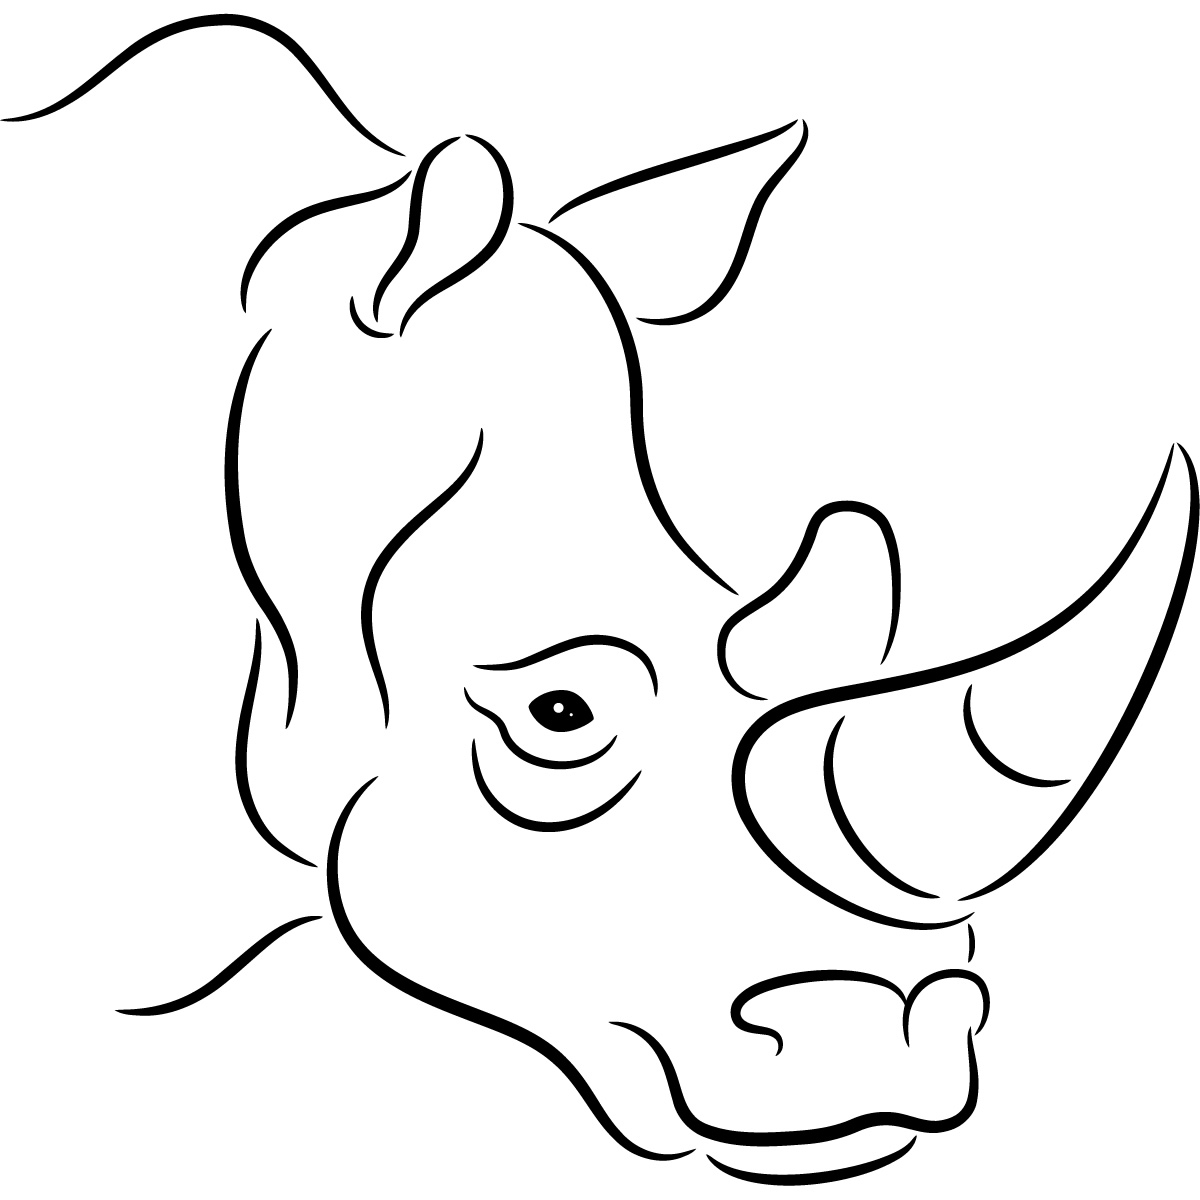 Out Line Drawing Of Animals : Outline of rhino clipart best